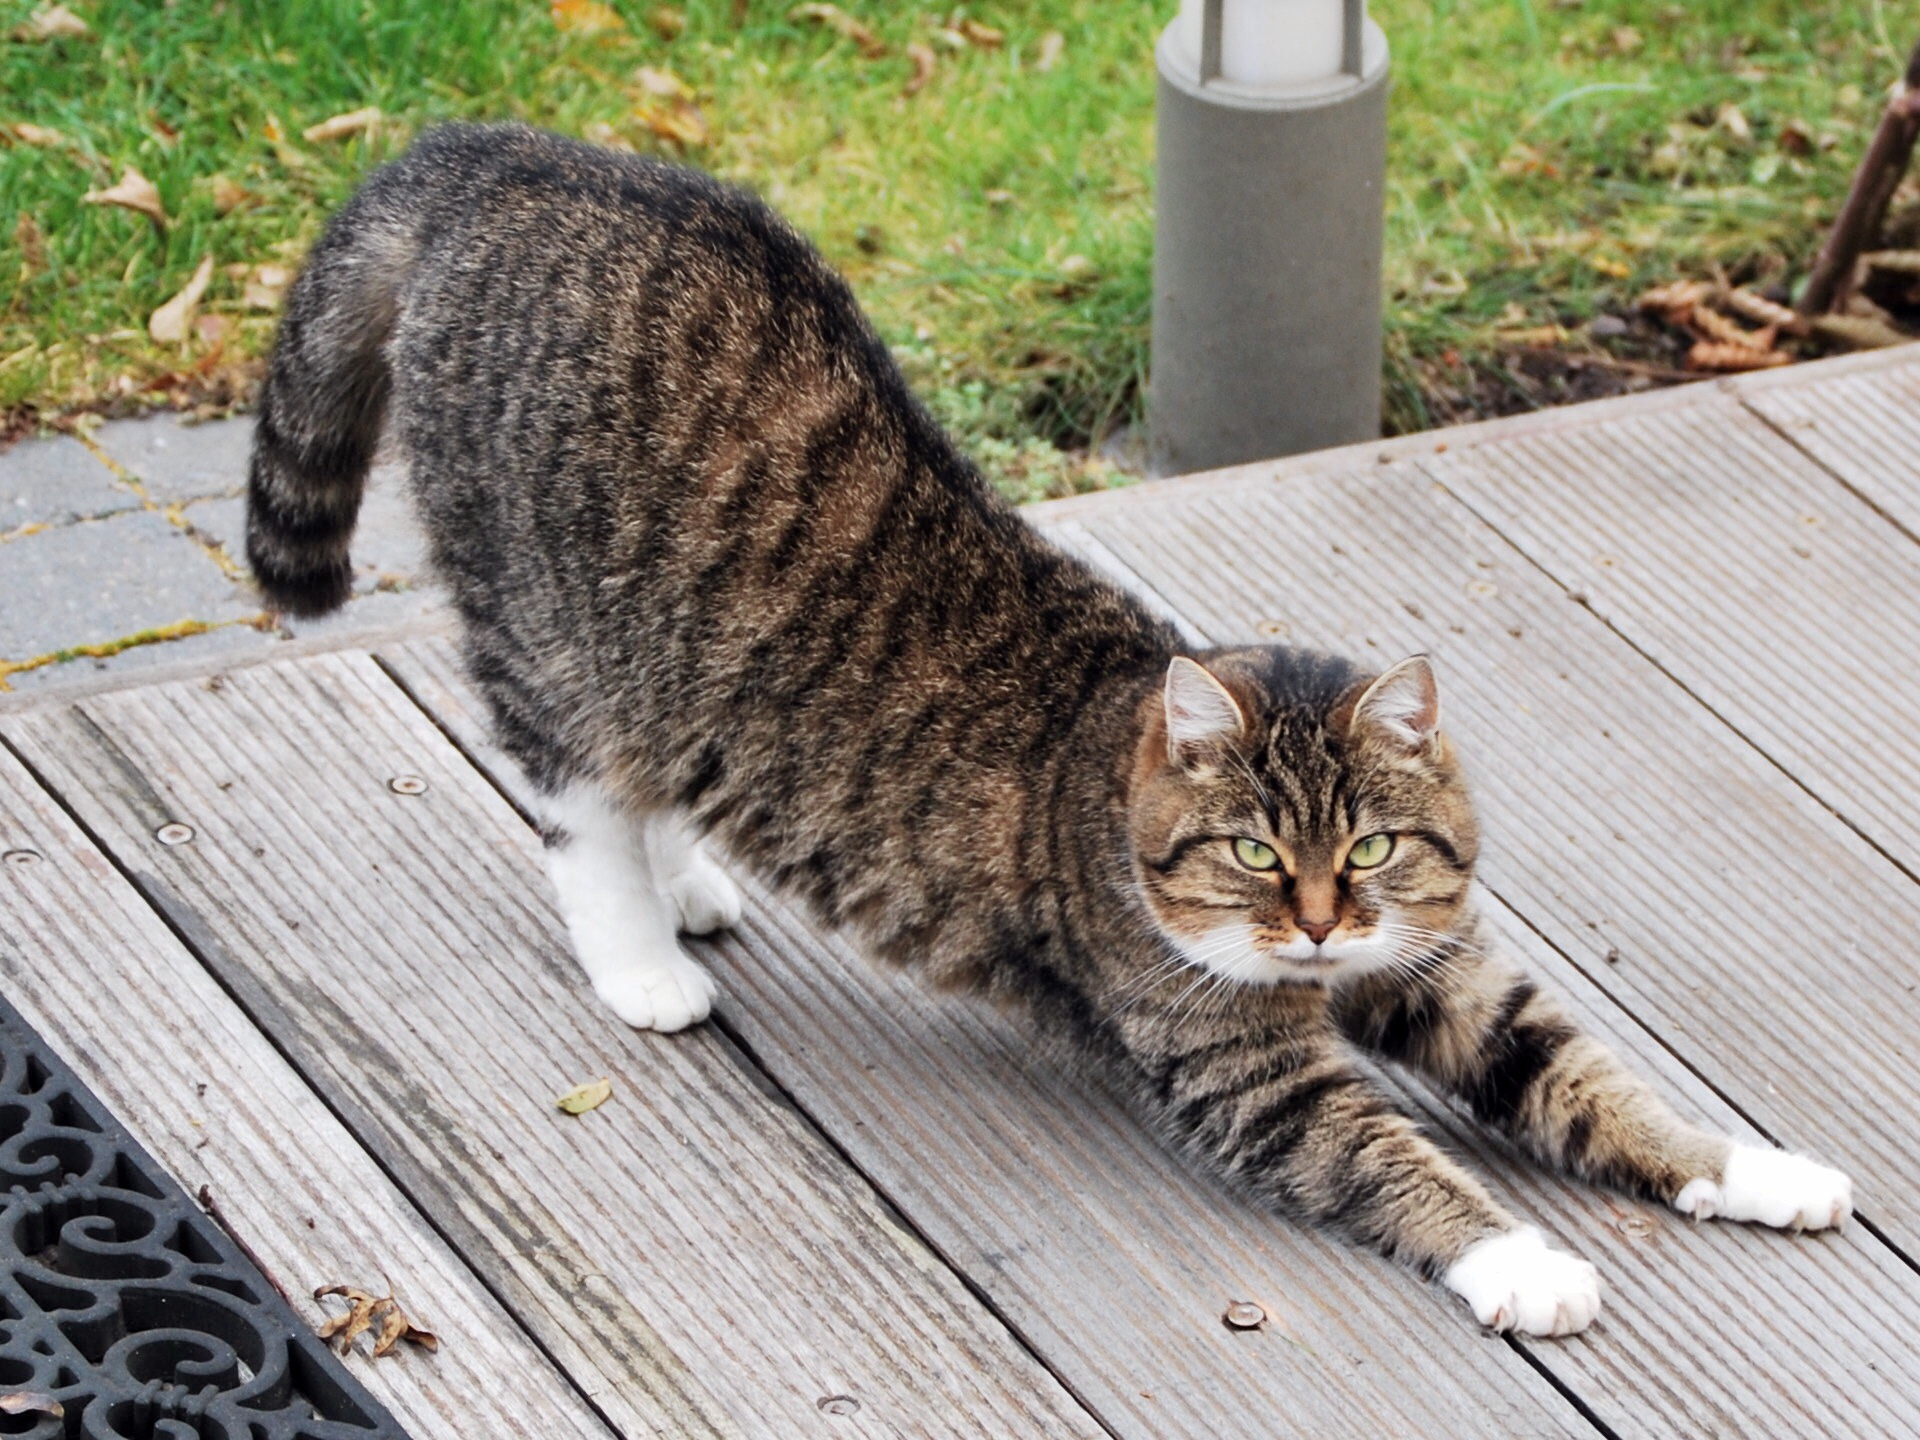 An in-depth review of the best cat deterrents available in 2018.